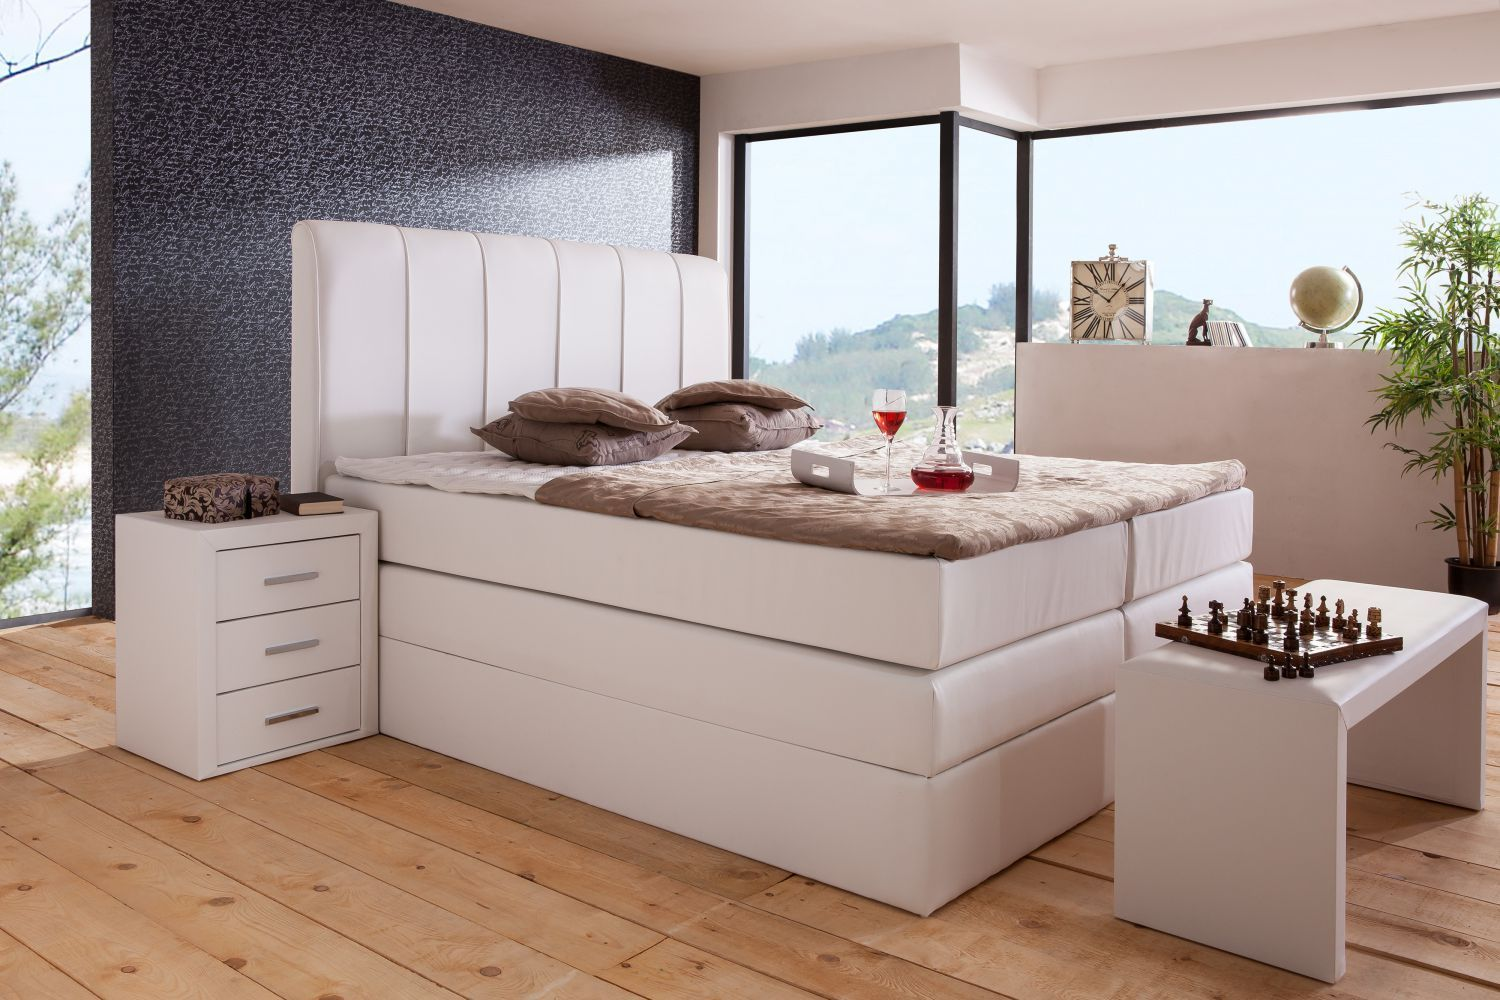 boxspringbett sevilla box mit bettkasten 140x200 160x200 180x200 cm ebay. Black Bedroom Furniture Sets. Home Design Ideas